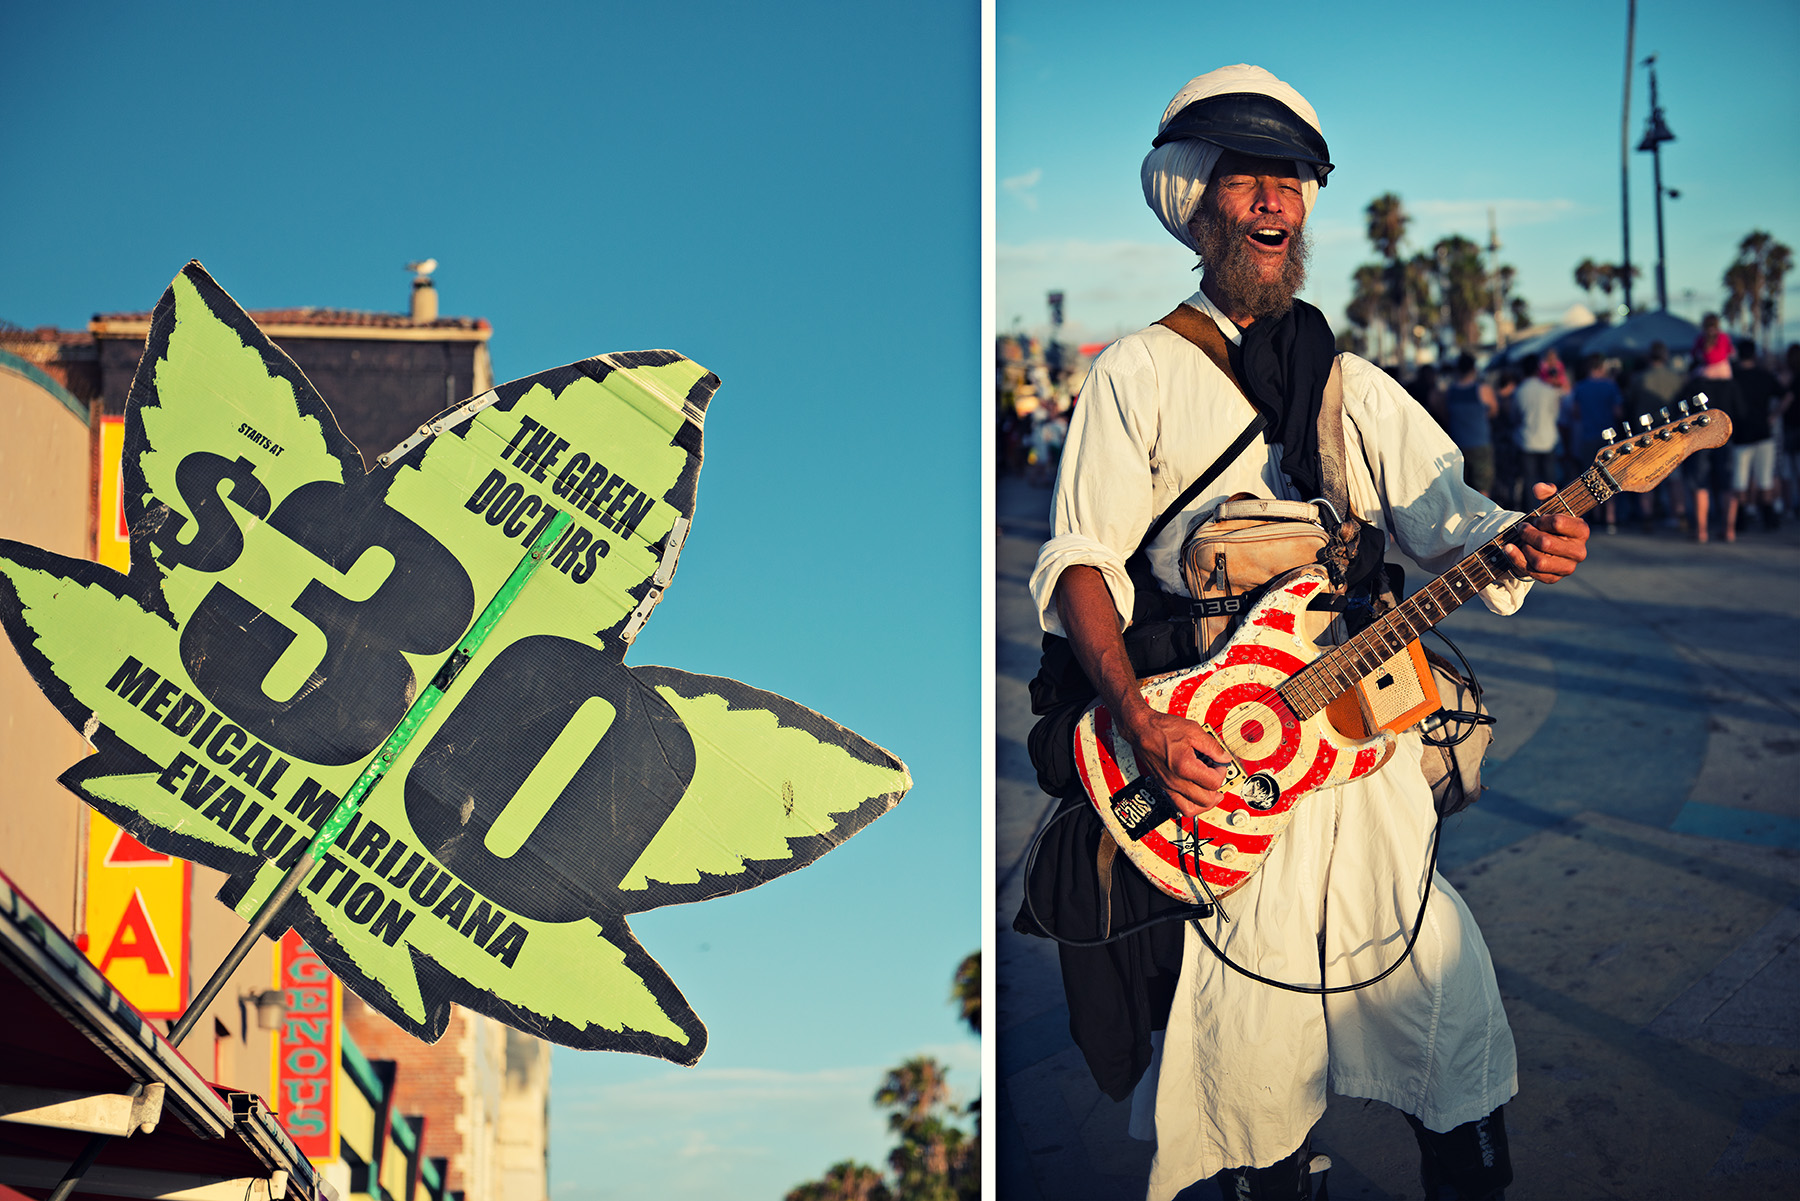 left: Marijuana Store Sign | right: Singer on rollerblades performing